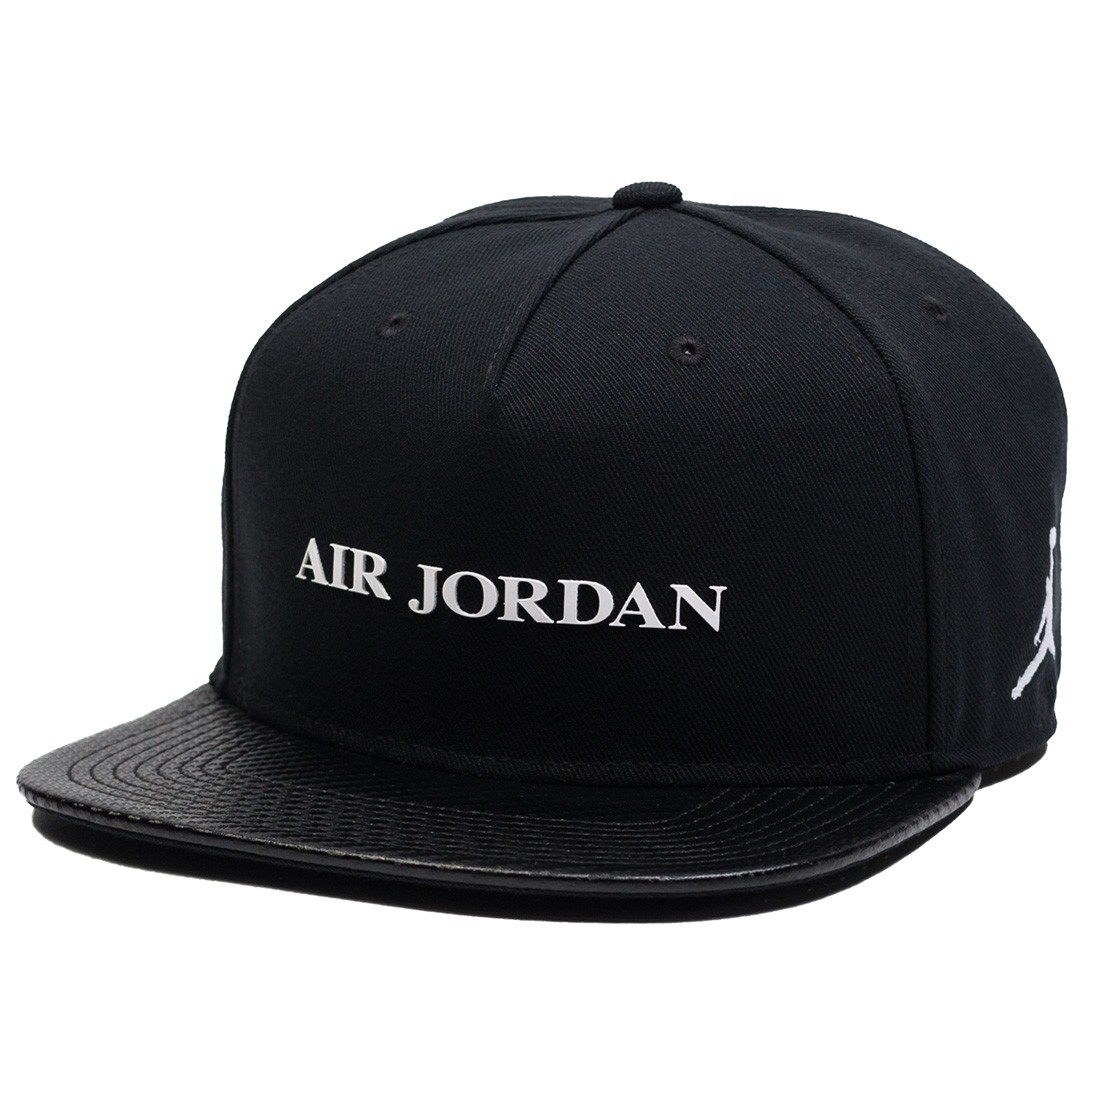 san francisco 51953 4873a jordan men unisex jordan jumpman pro aj 10 cap black white